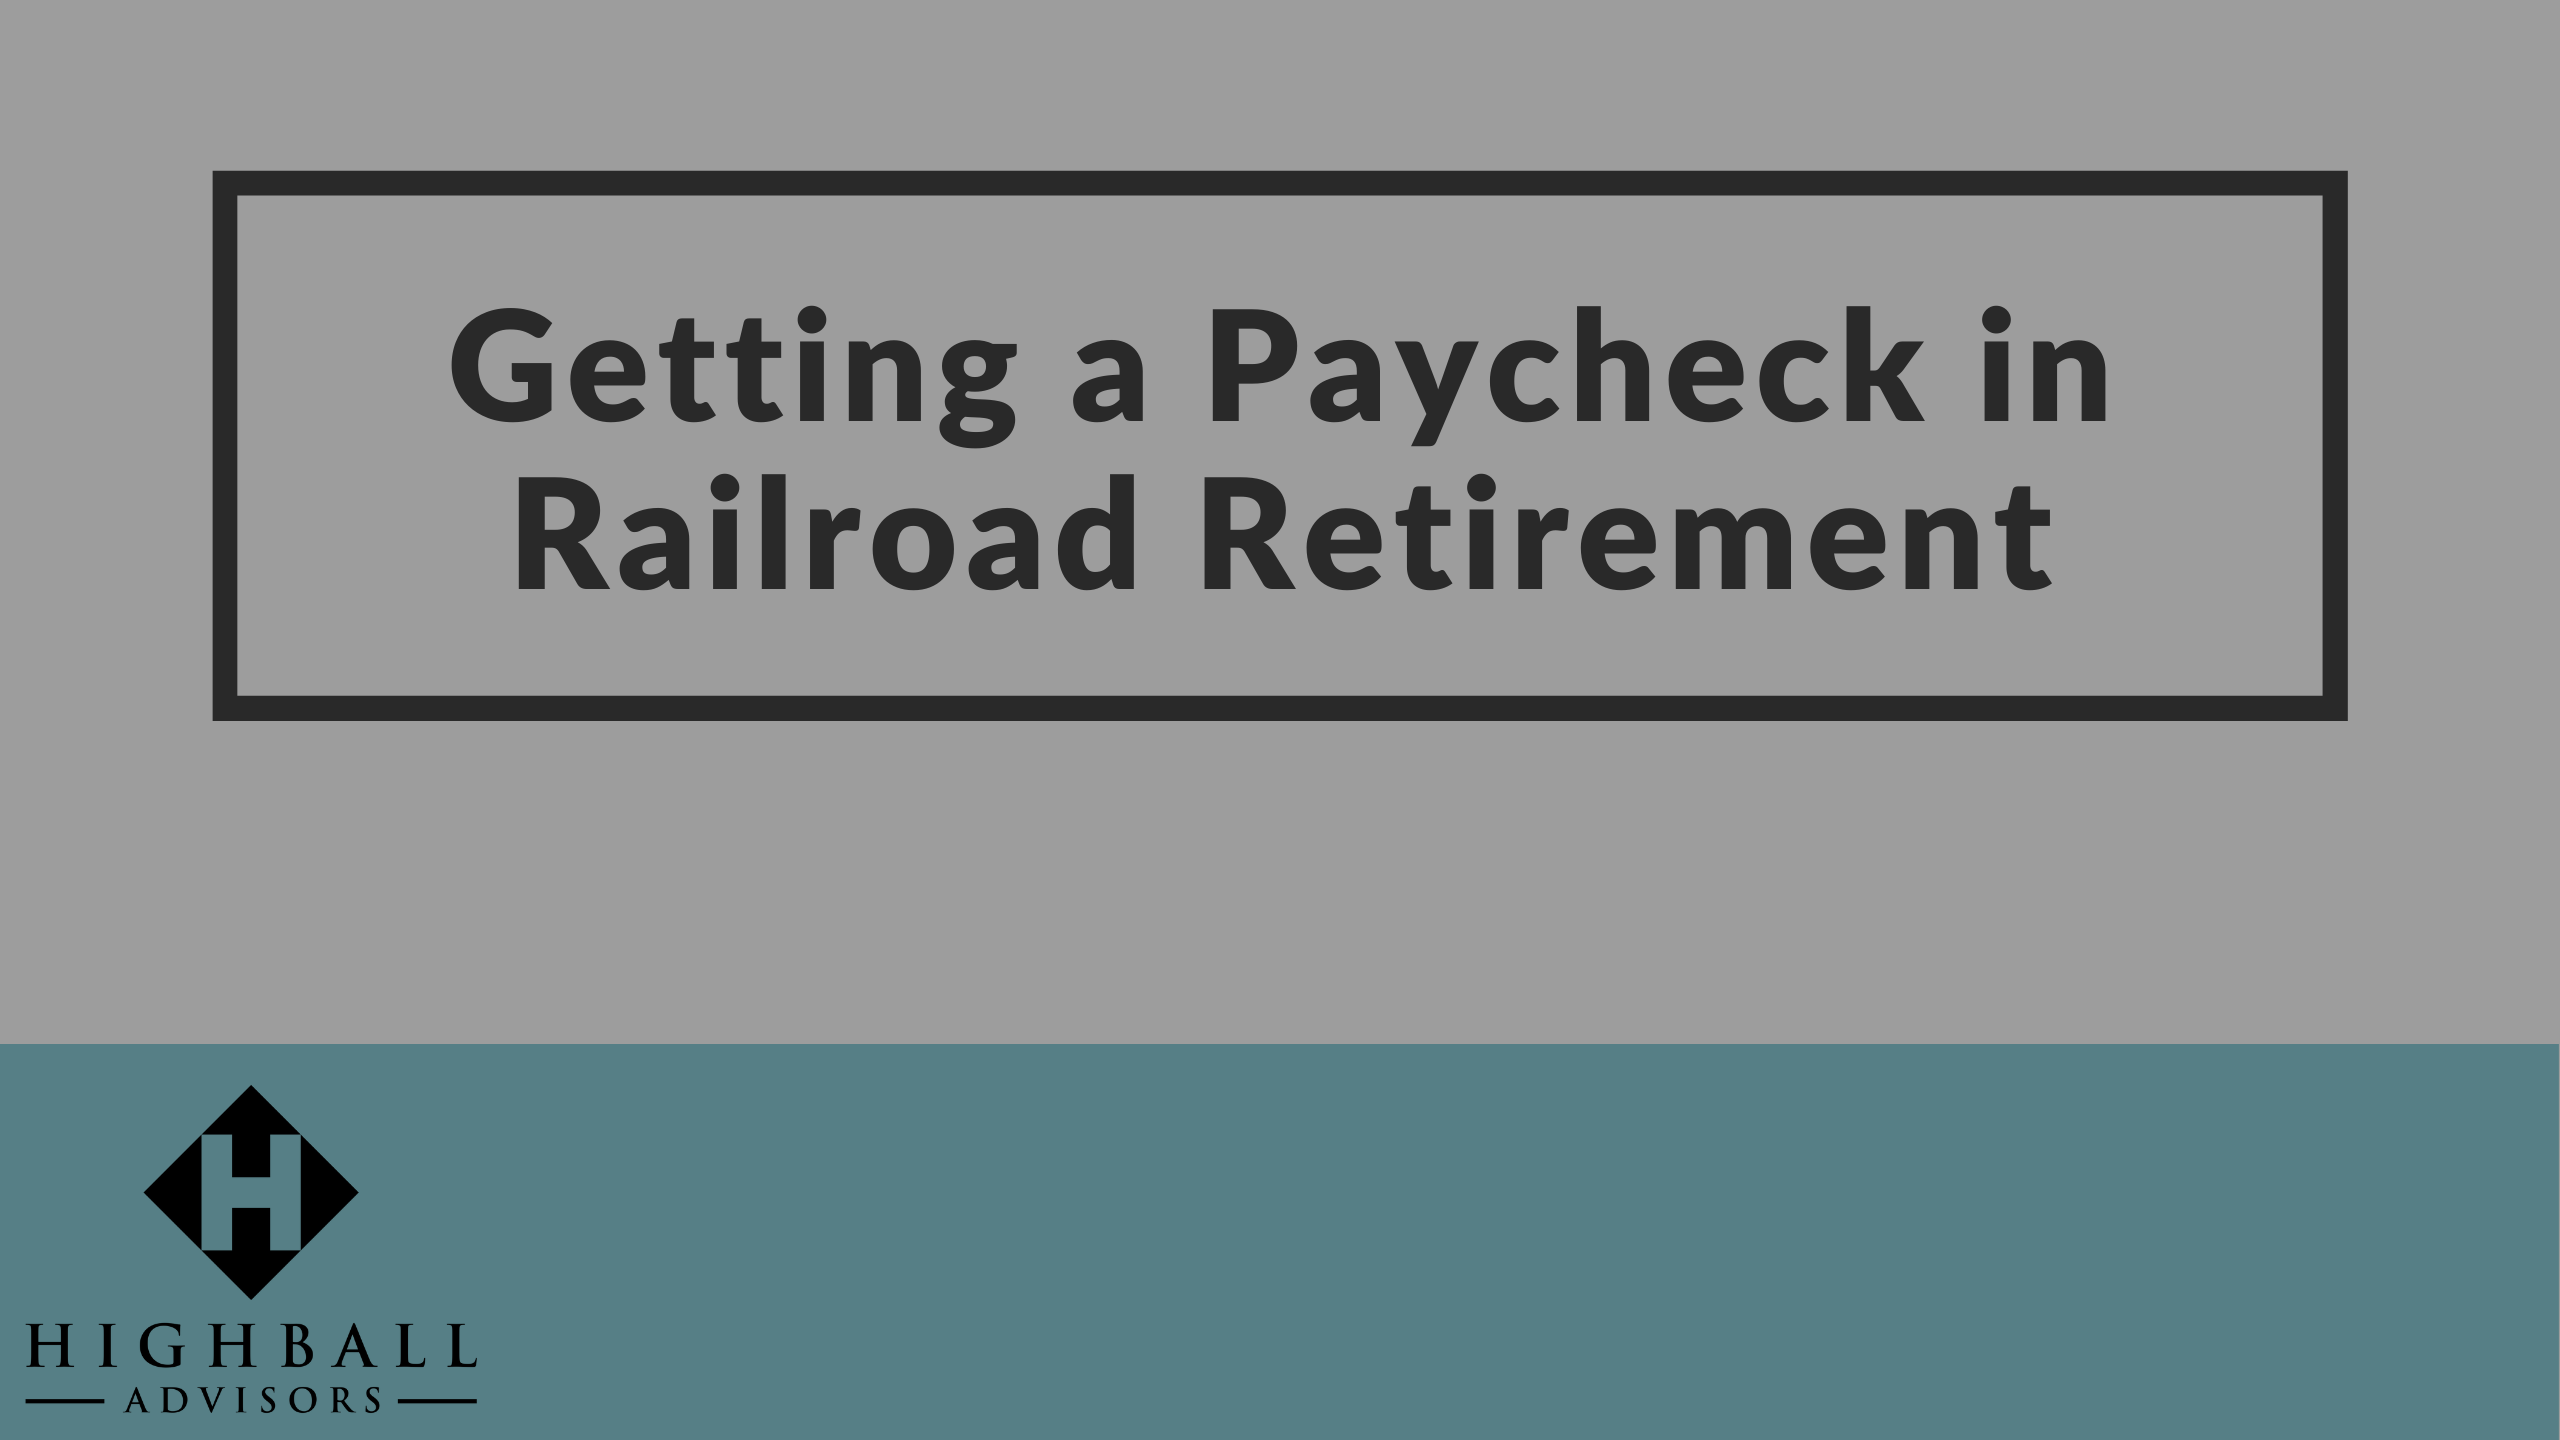 VIDEO: Getting a Paycheck in Railroad Retirement Thumbnail